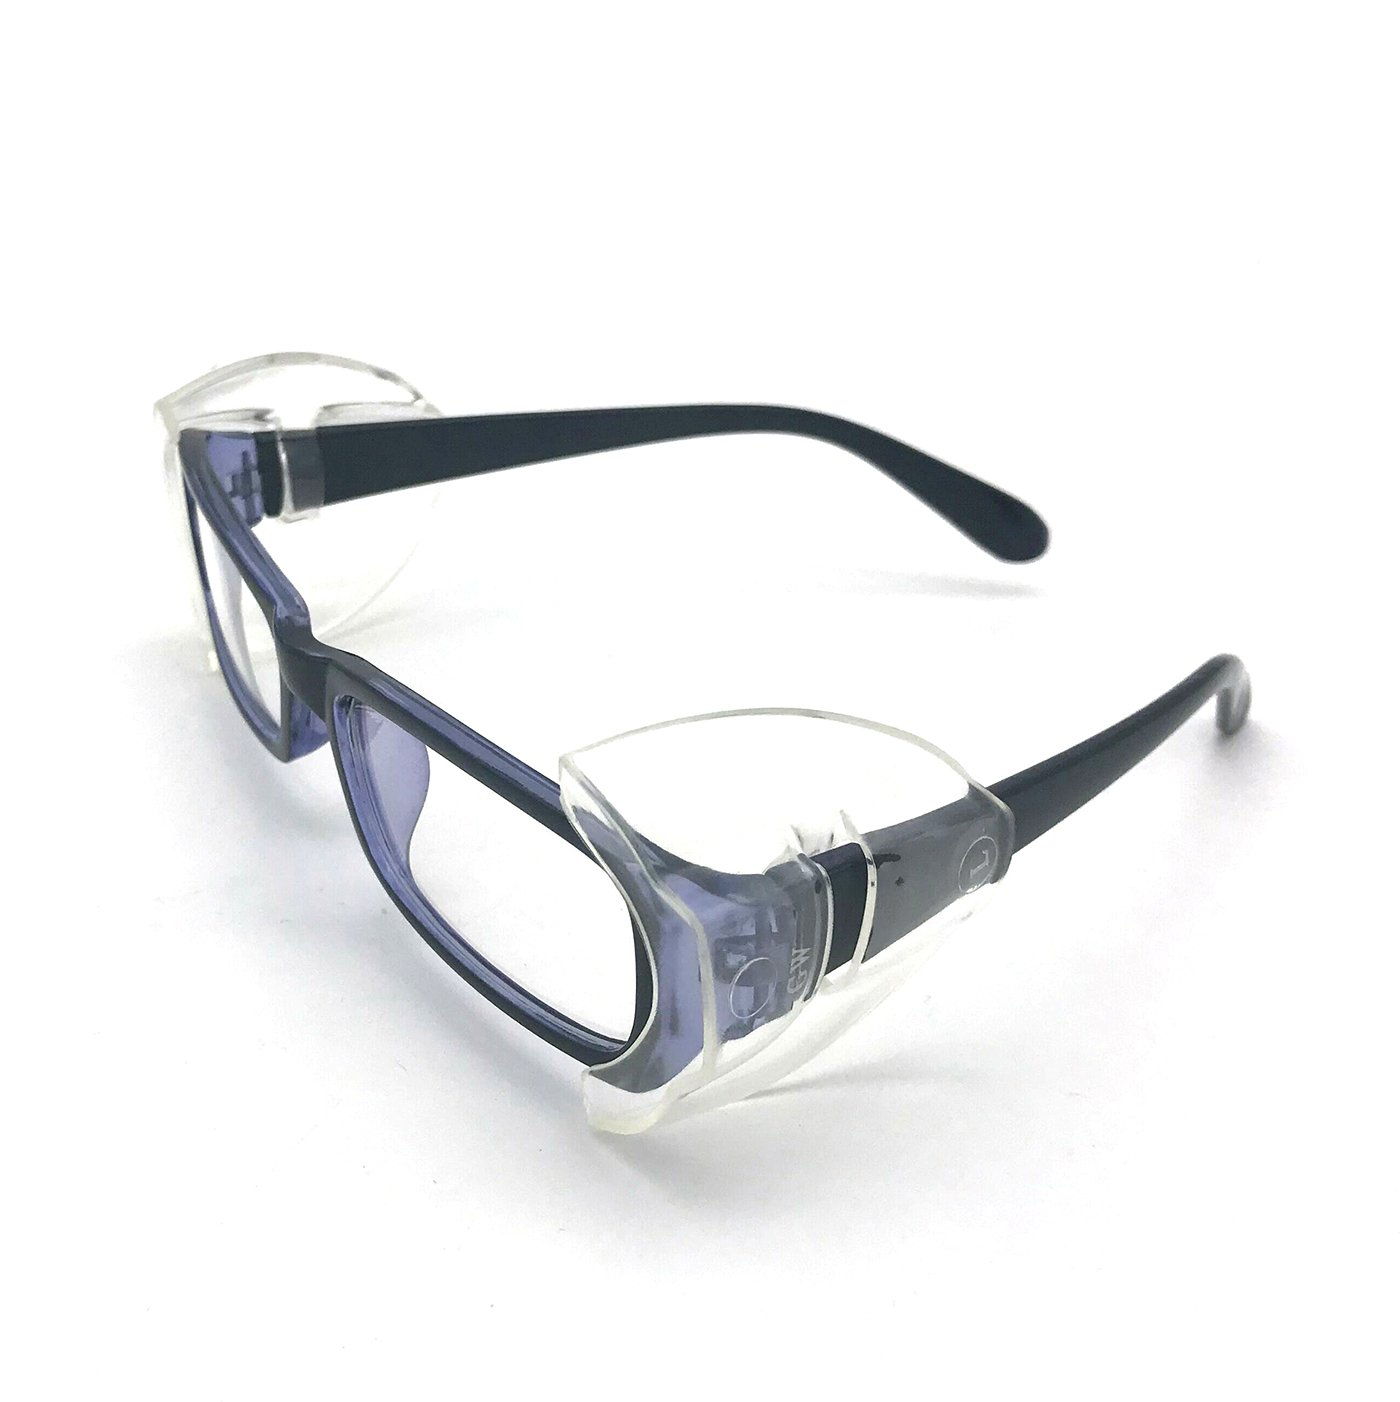 Wommty 2 Pair Safety Classes Flexible Clear Side Shields - Fits Small To Medium Eyeglasses (M) Wommty EU